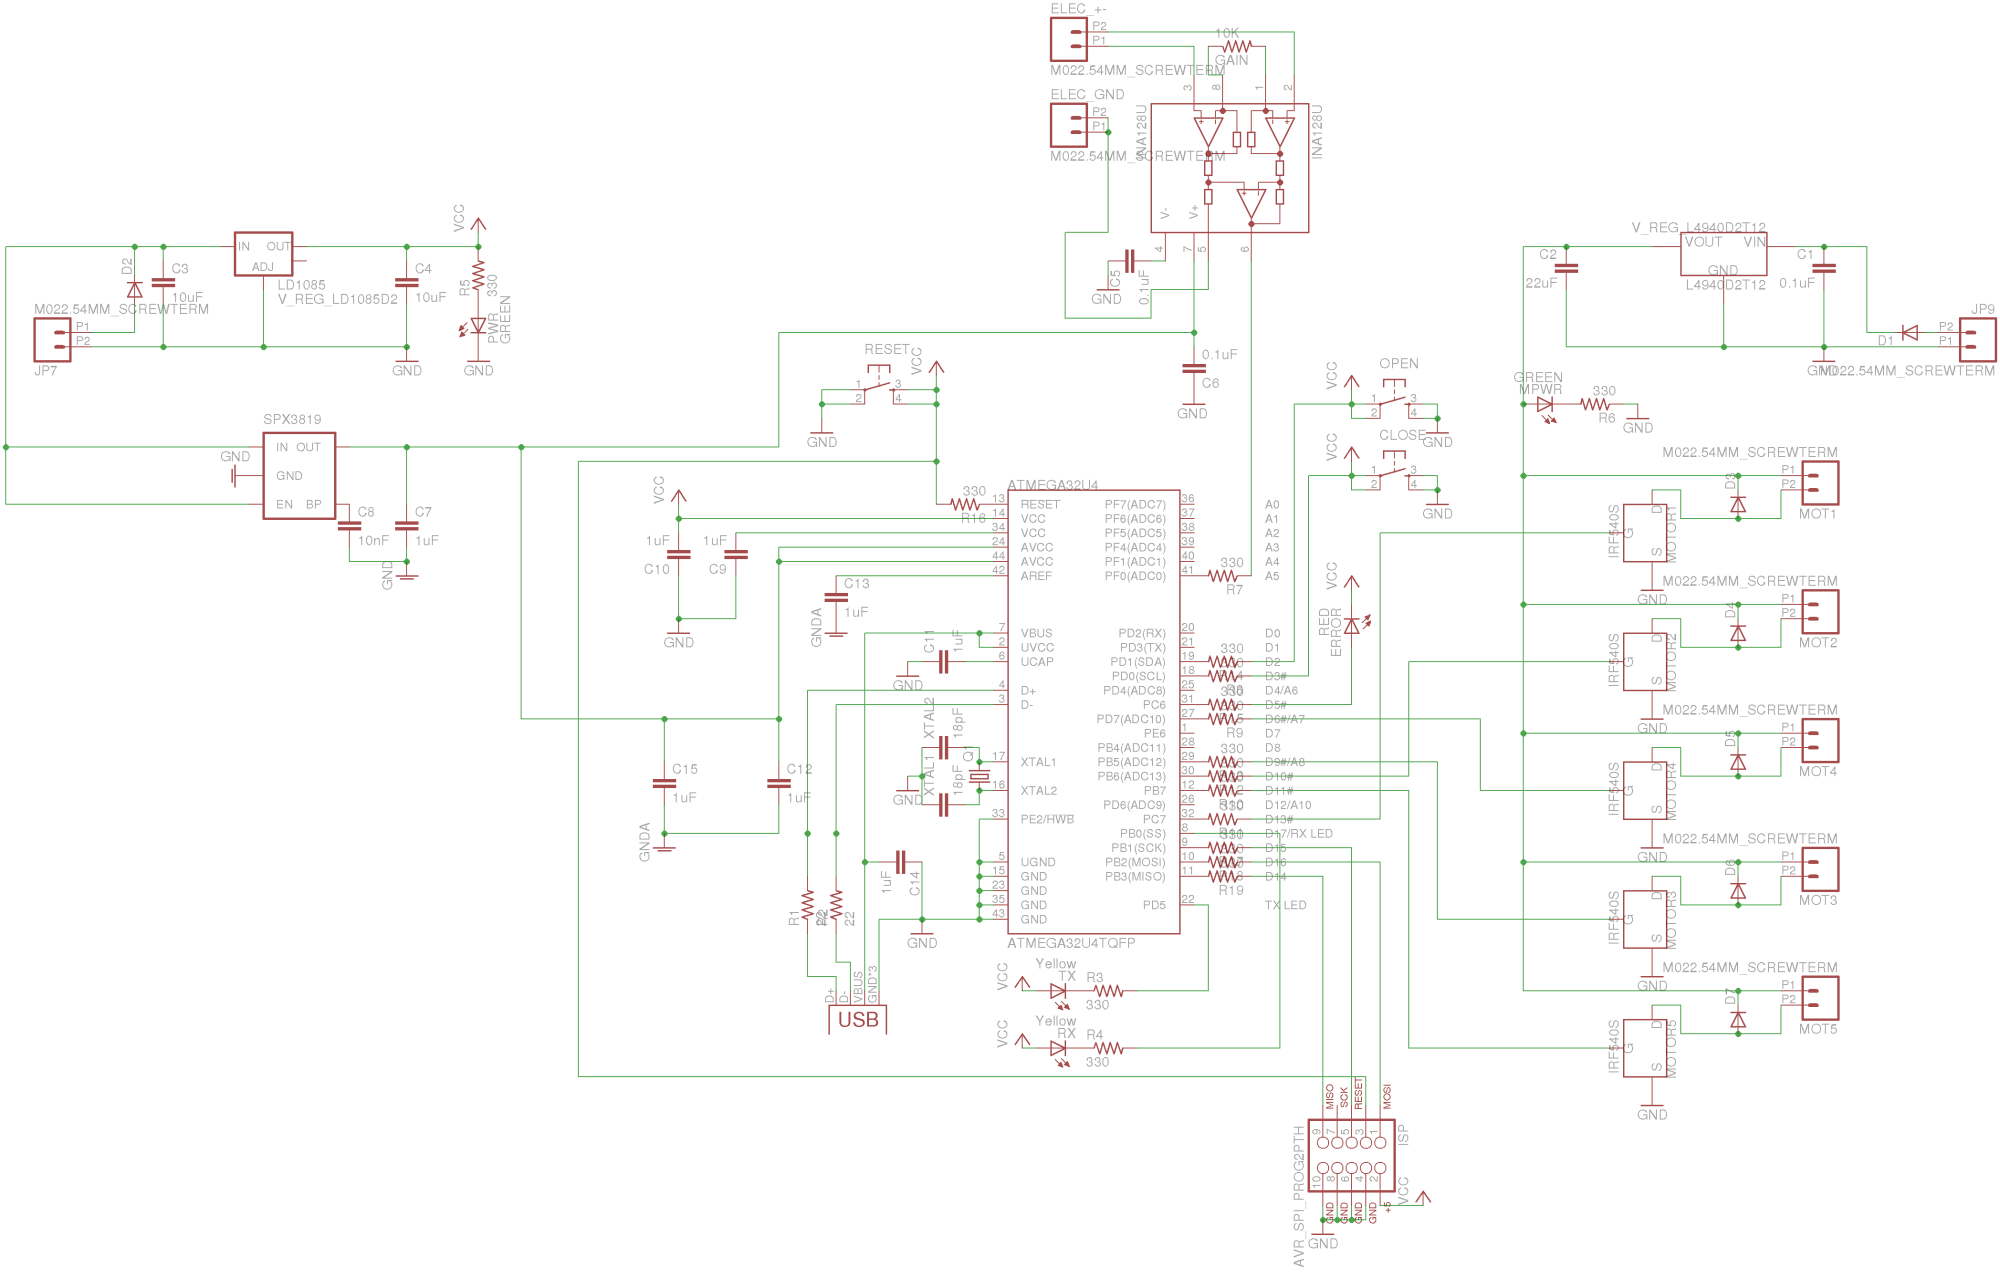 hight resolution of original schematic image